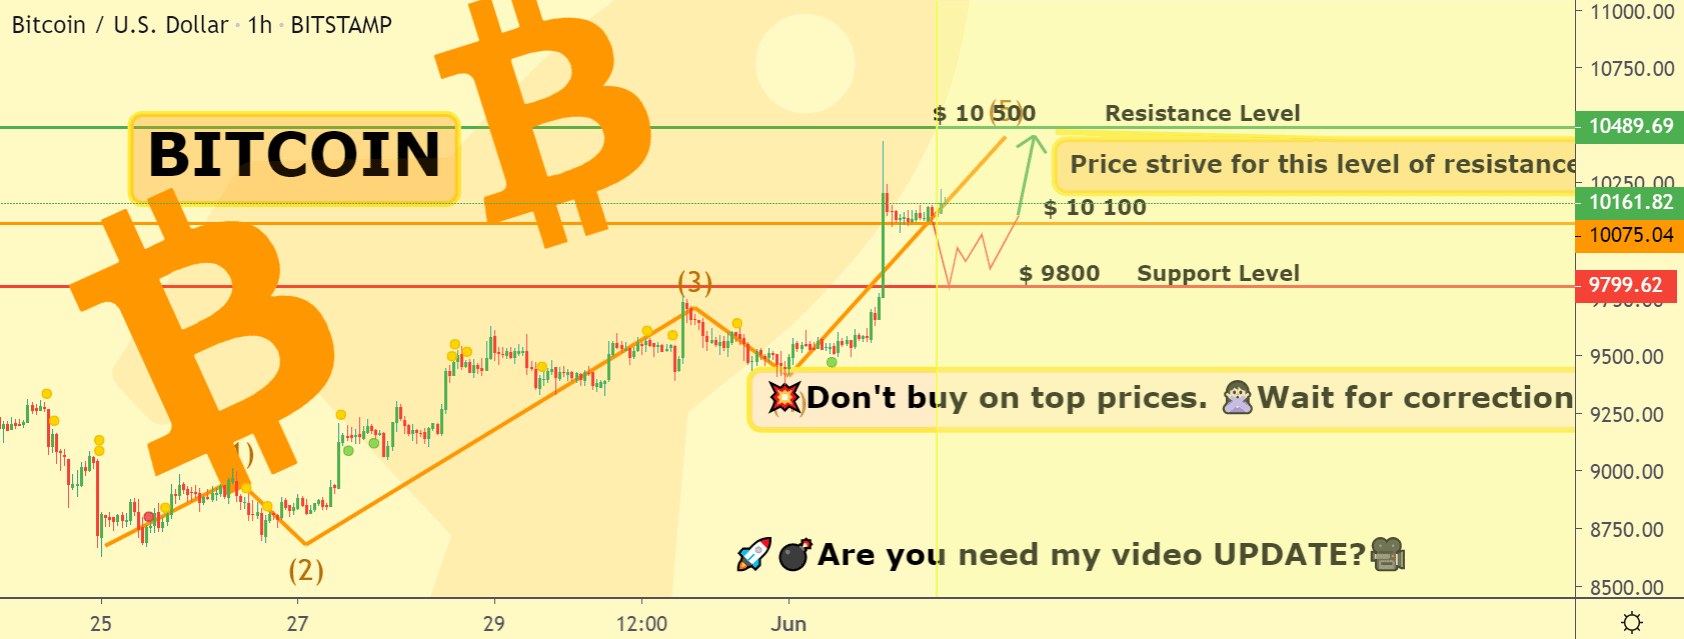 Bitcoin Price Featured Chart